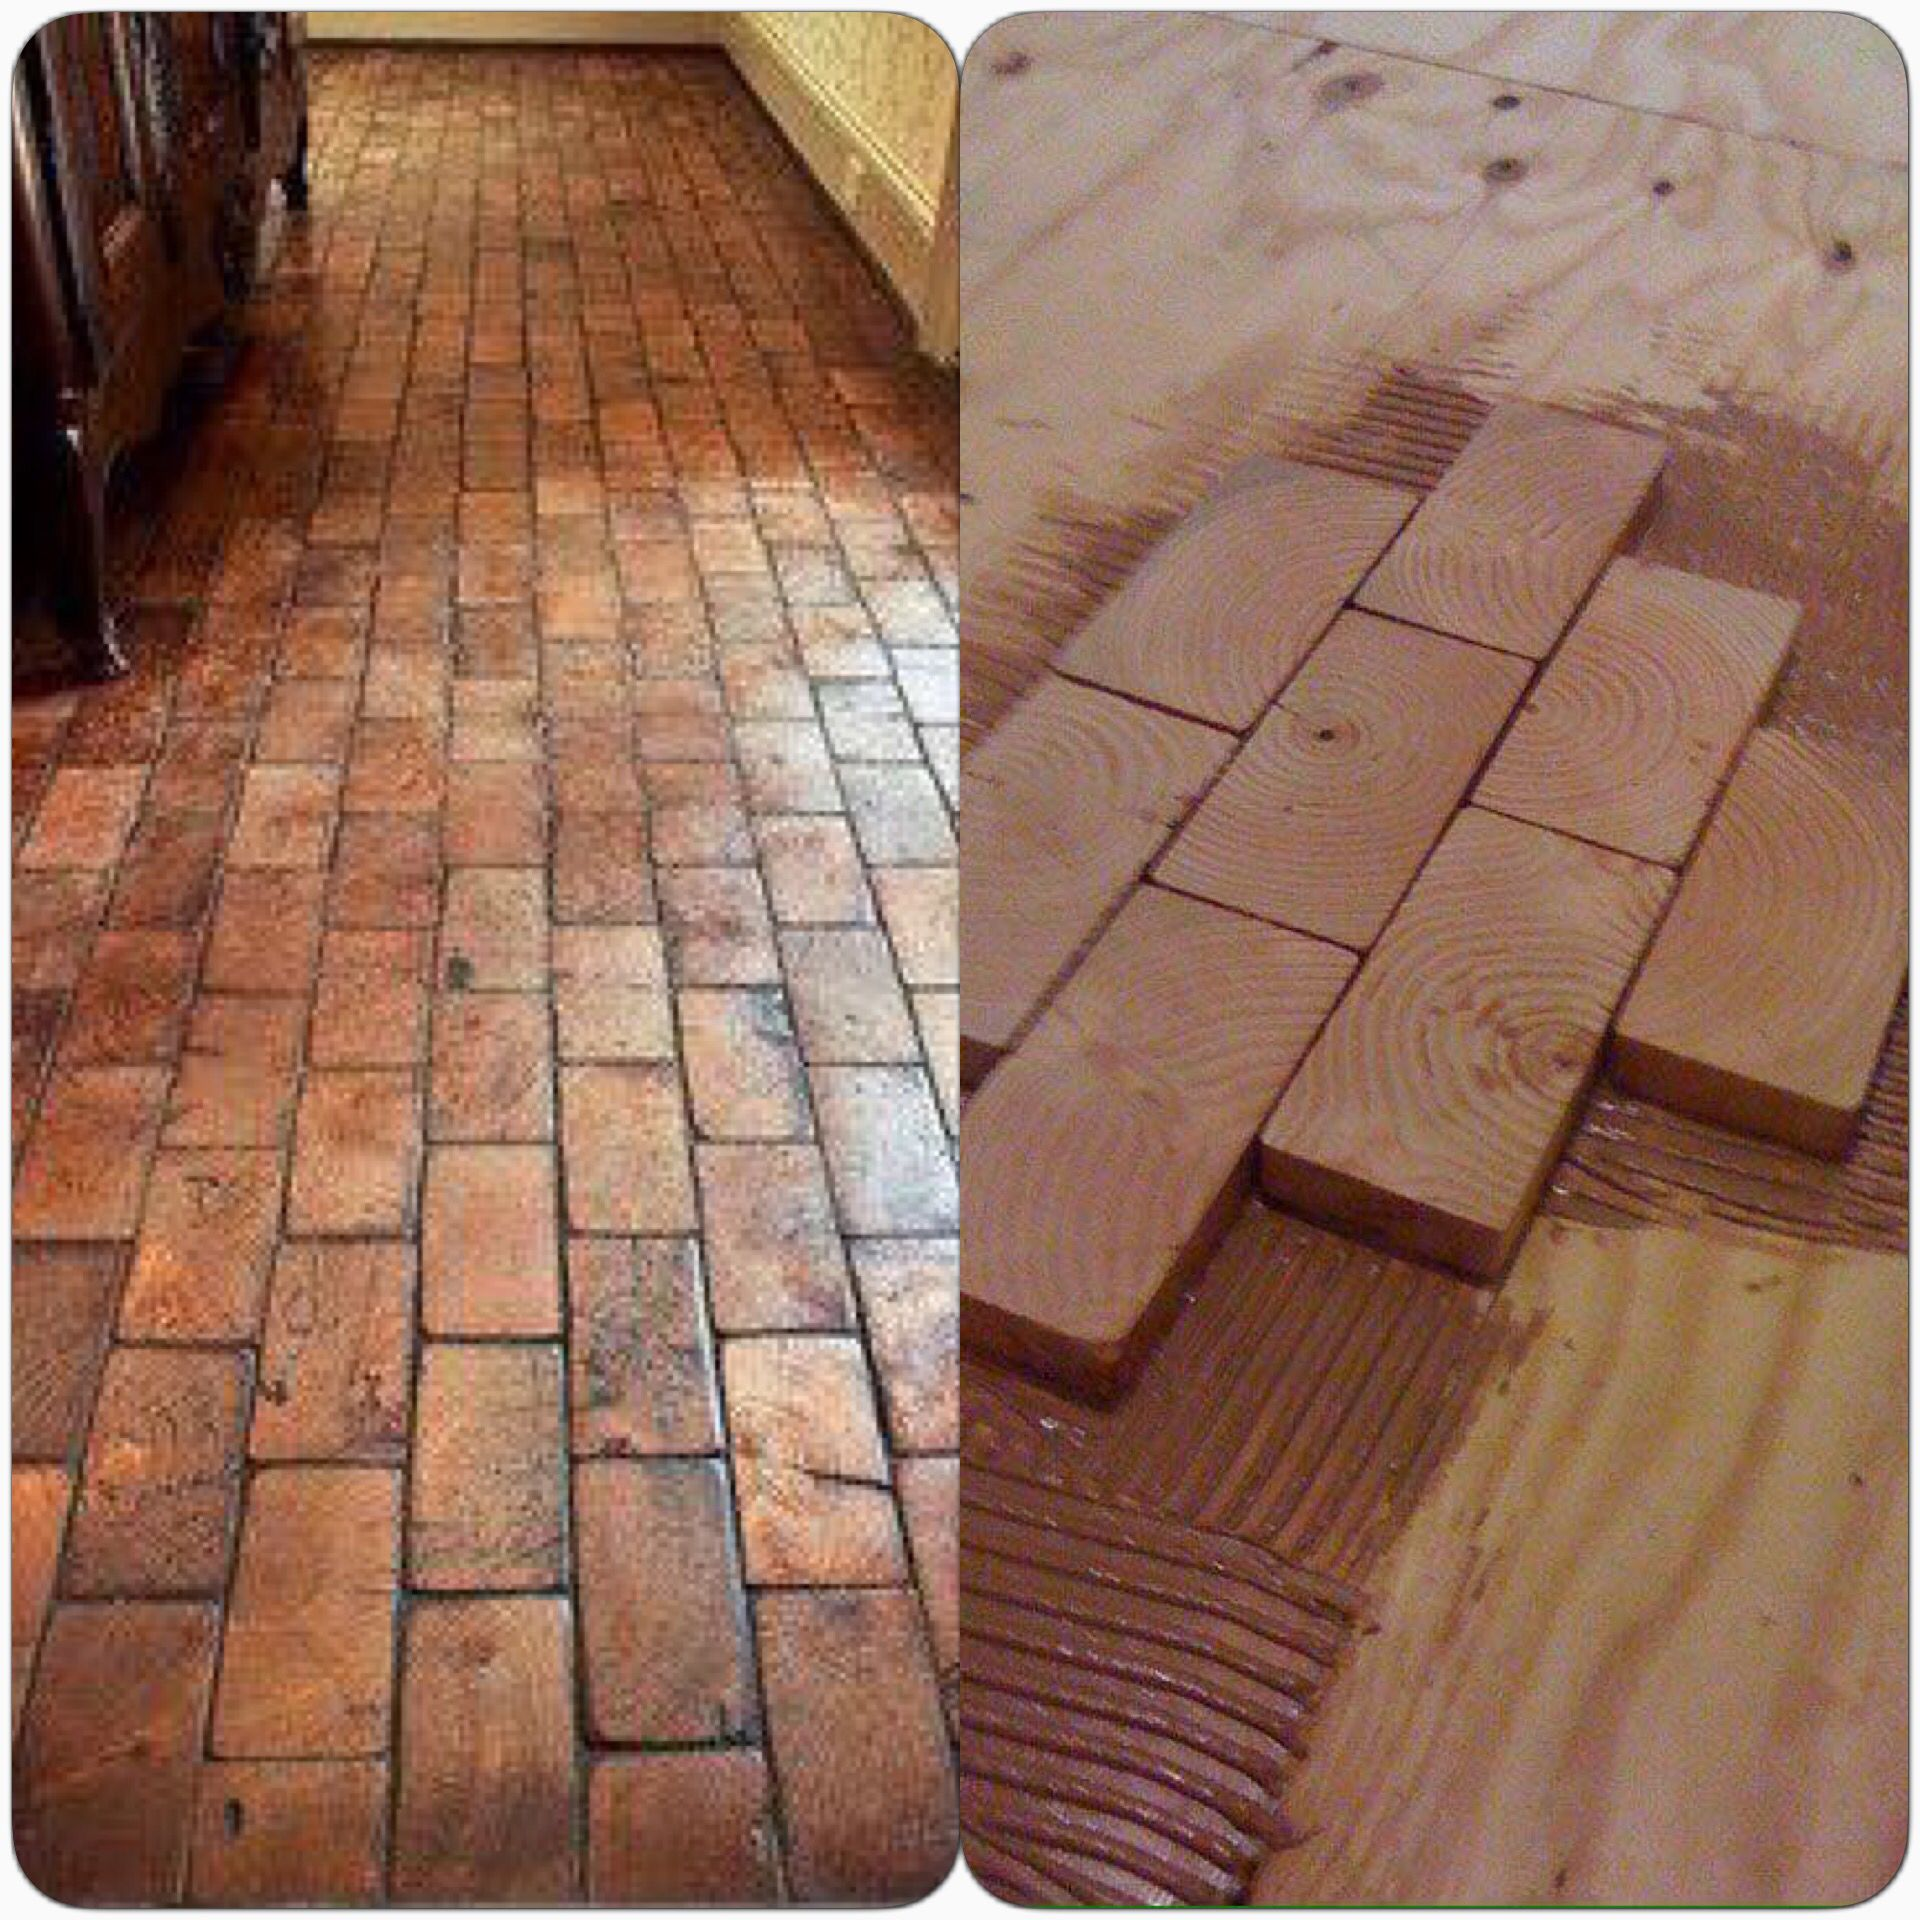 Floor made using end pieces of 2x4s would need to grout or caulk adhesive dailygadgetfo Image collections